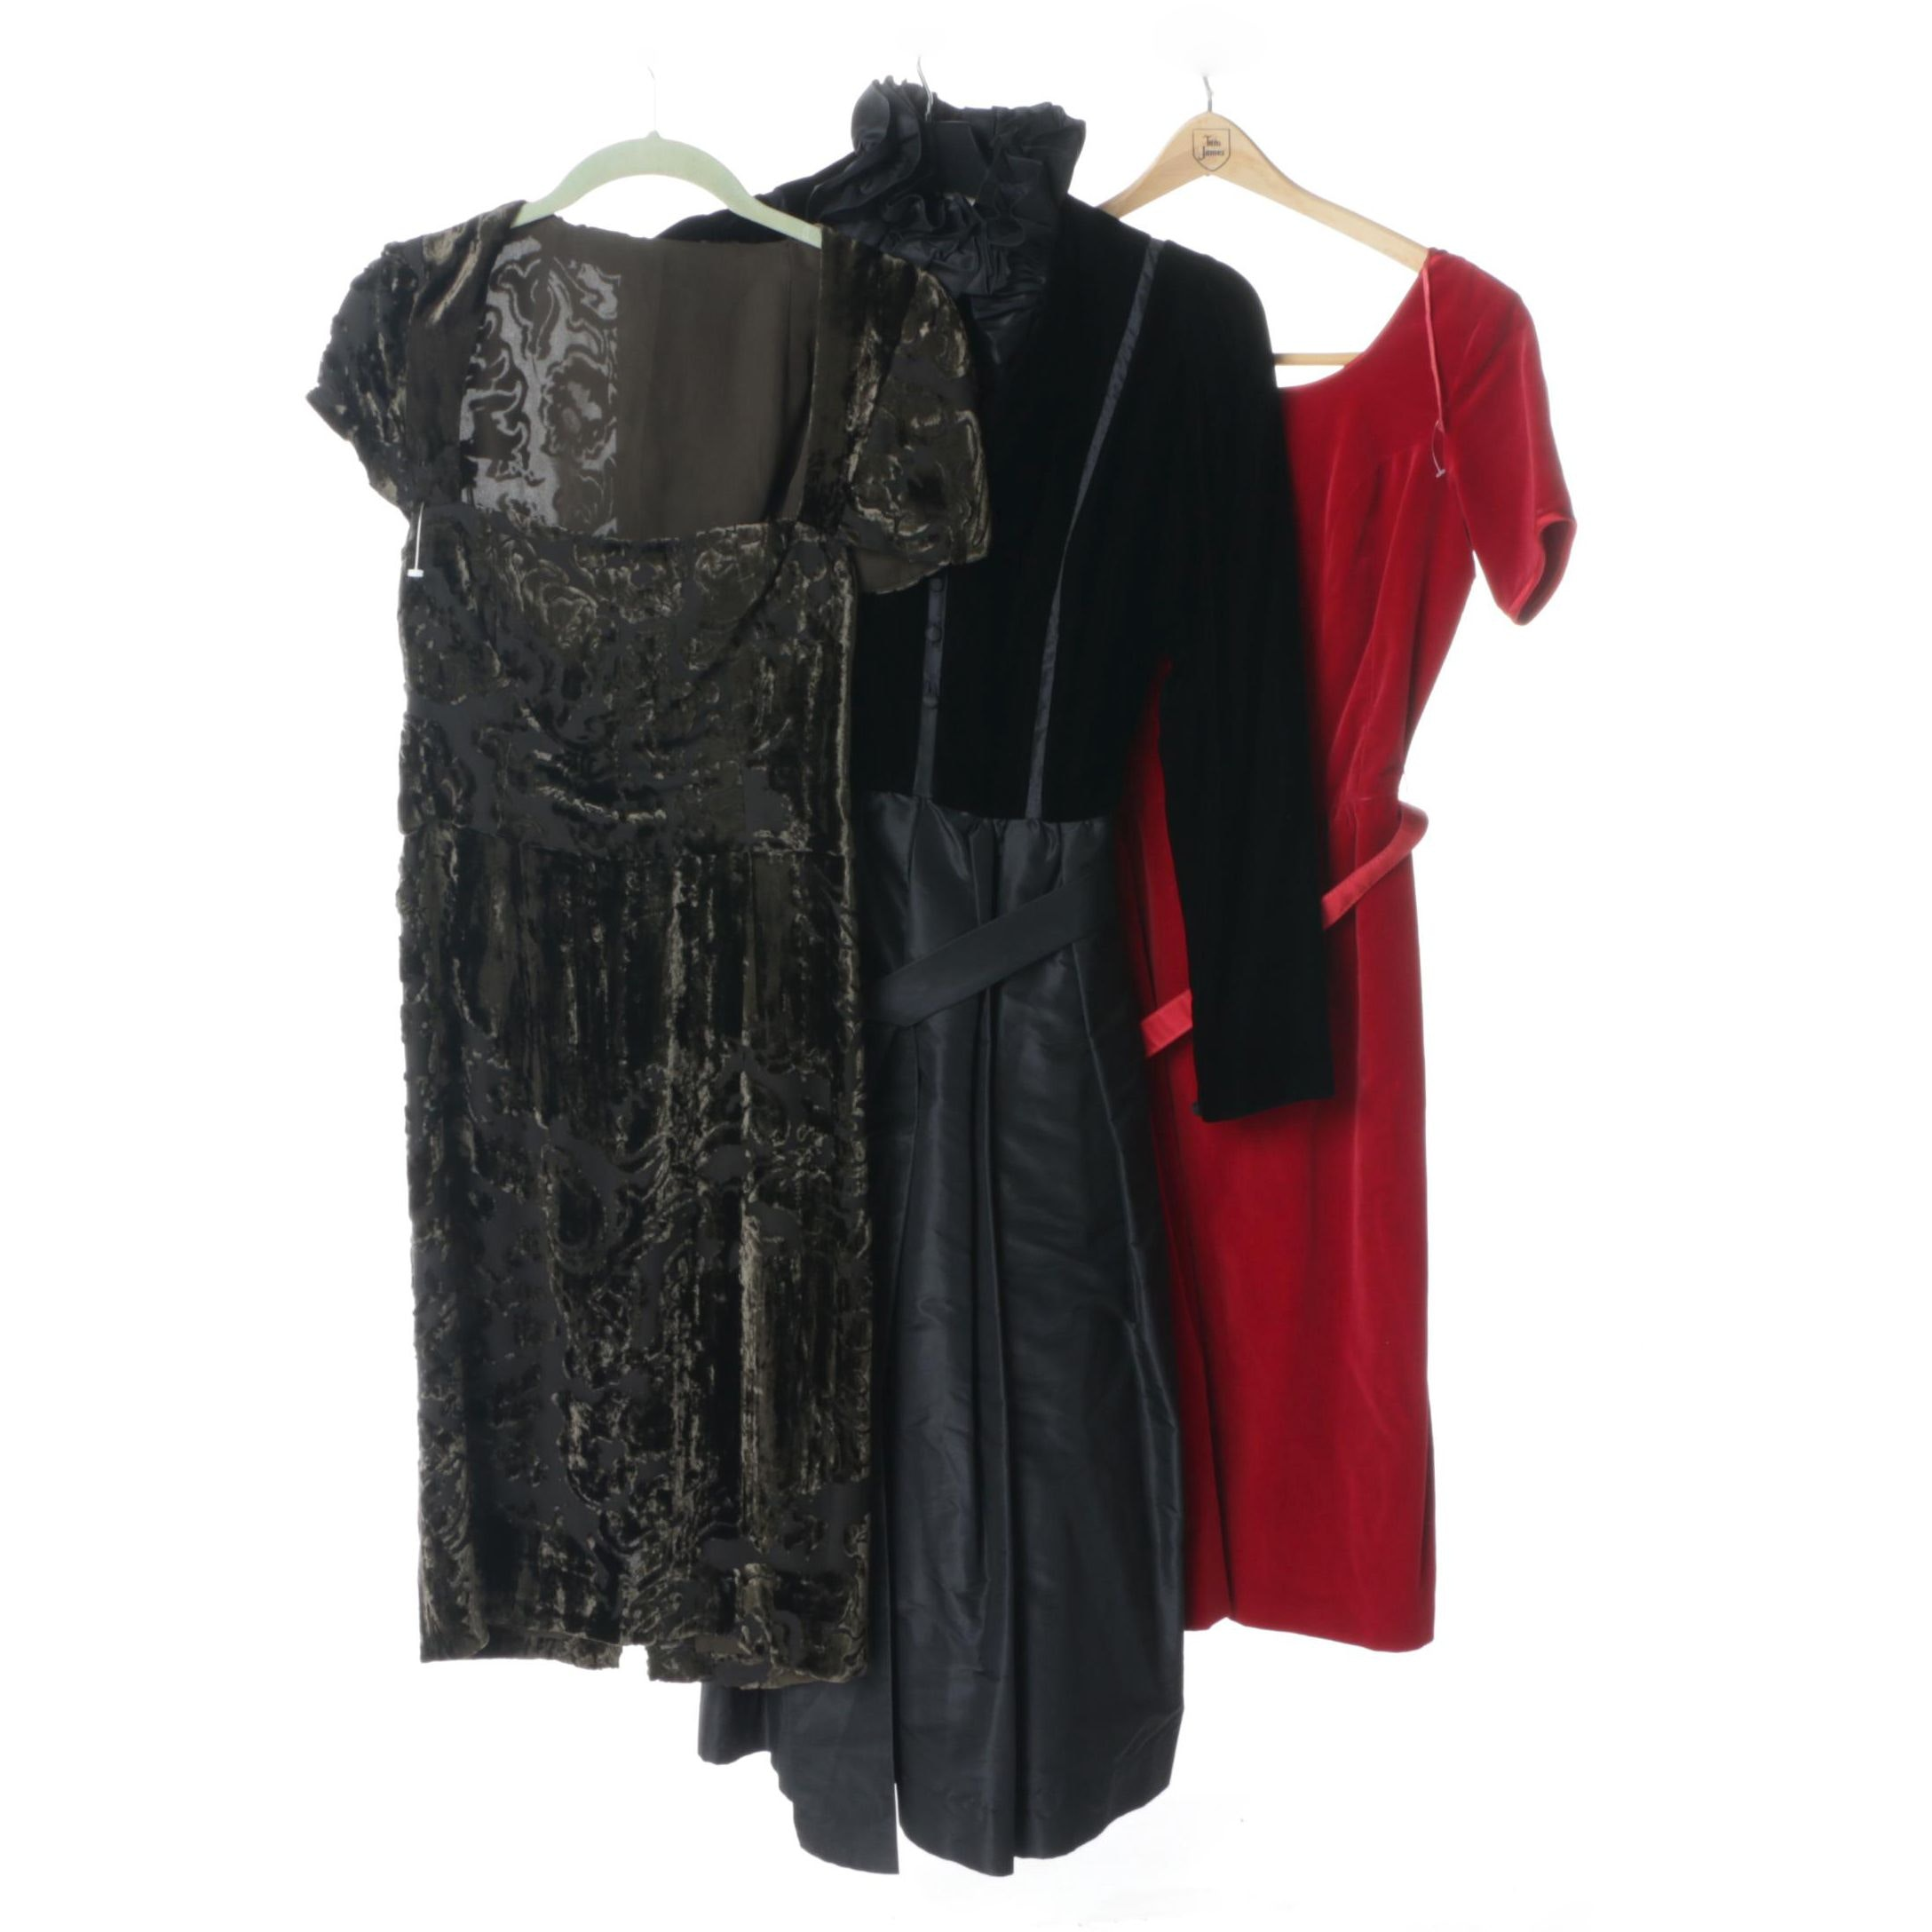 1960s Velvet Evening Dresses Including Albert Nipon and BuRNout